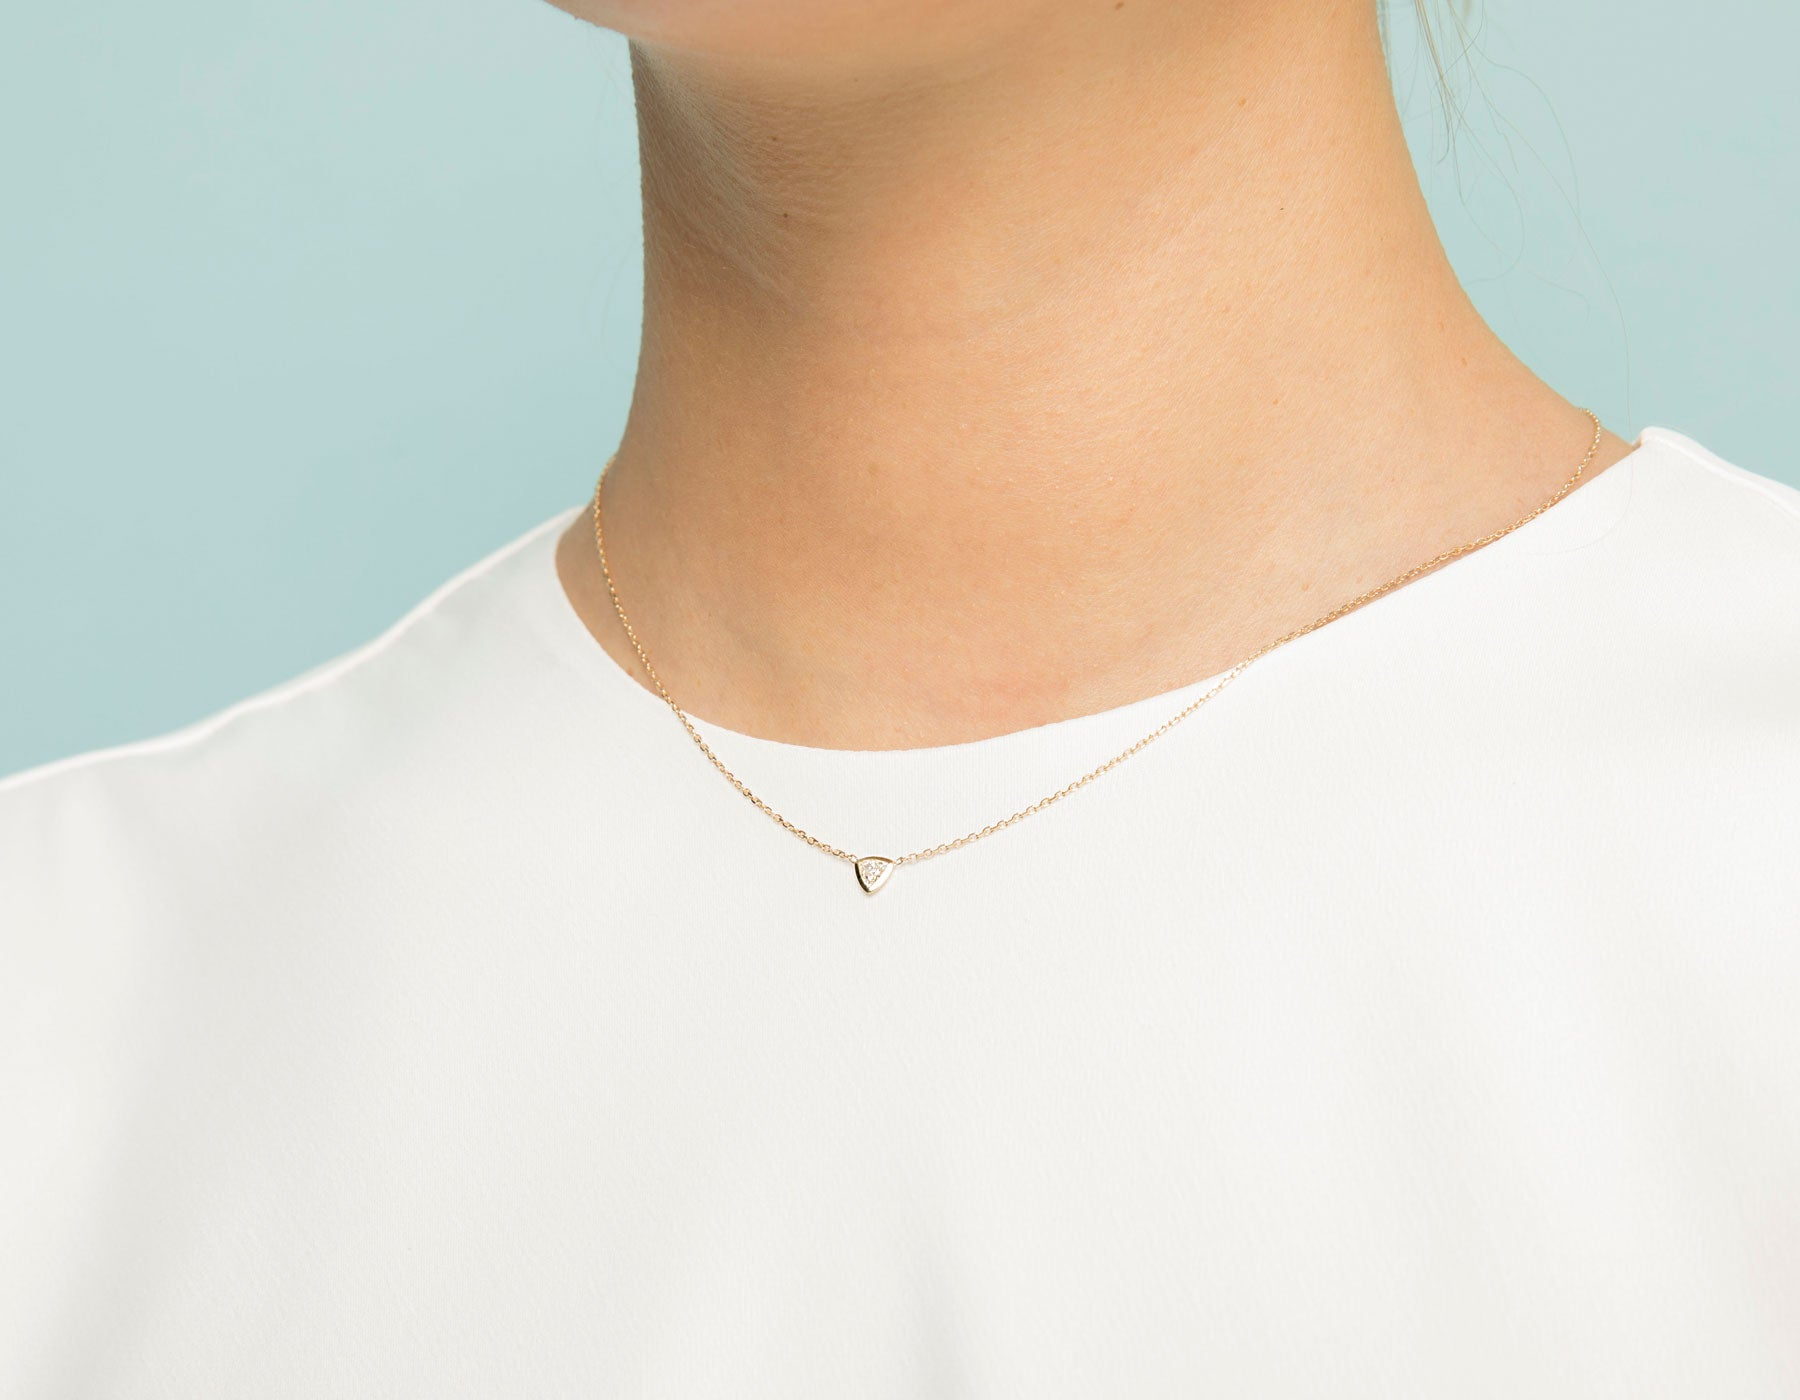 Model wearing dainty minimalist Trillion Diamond Bezel Necklace by Vrai, 14K White Gold